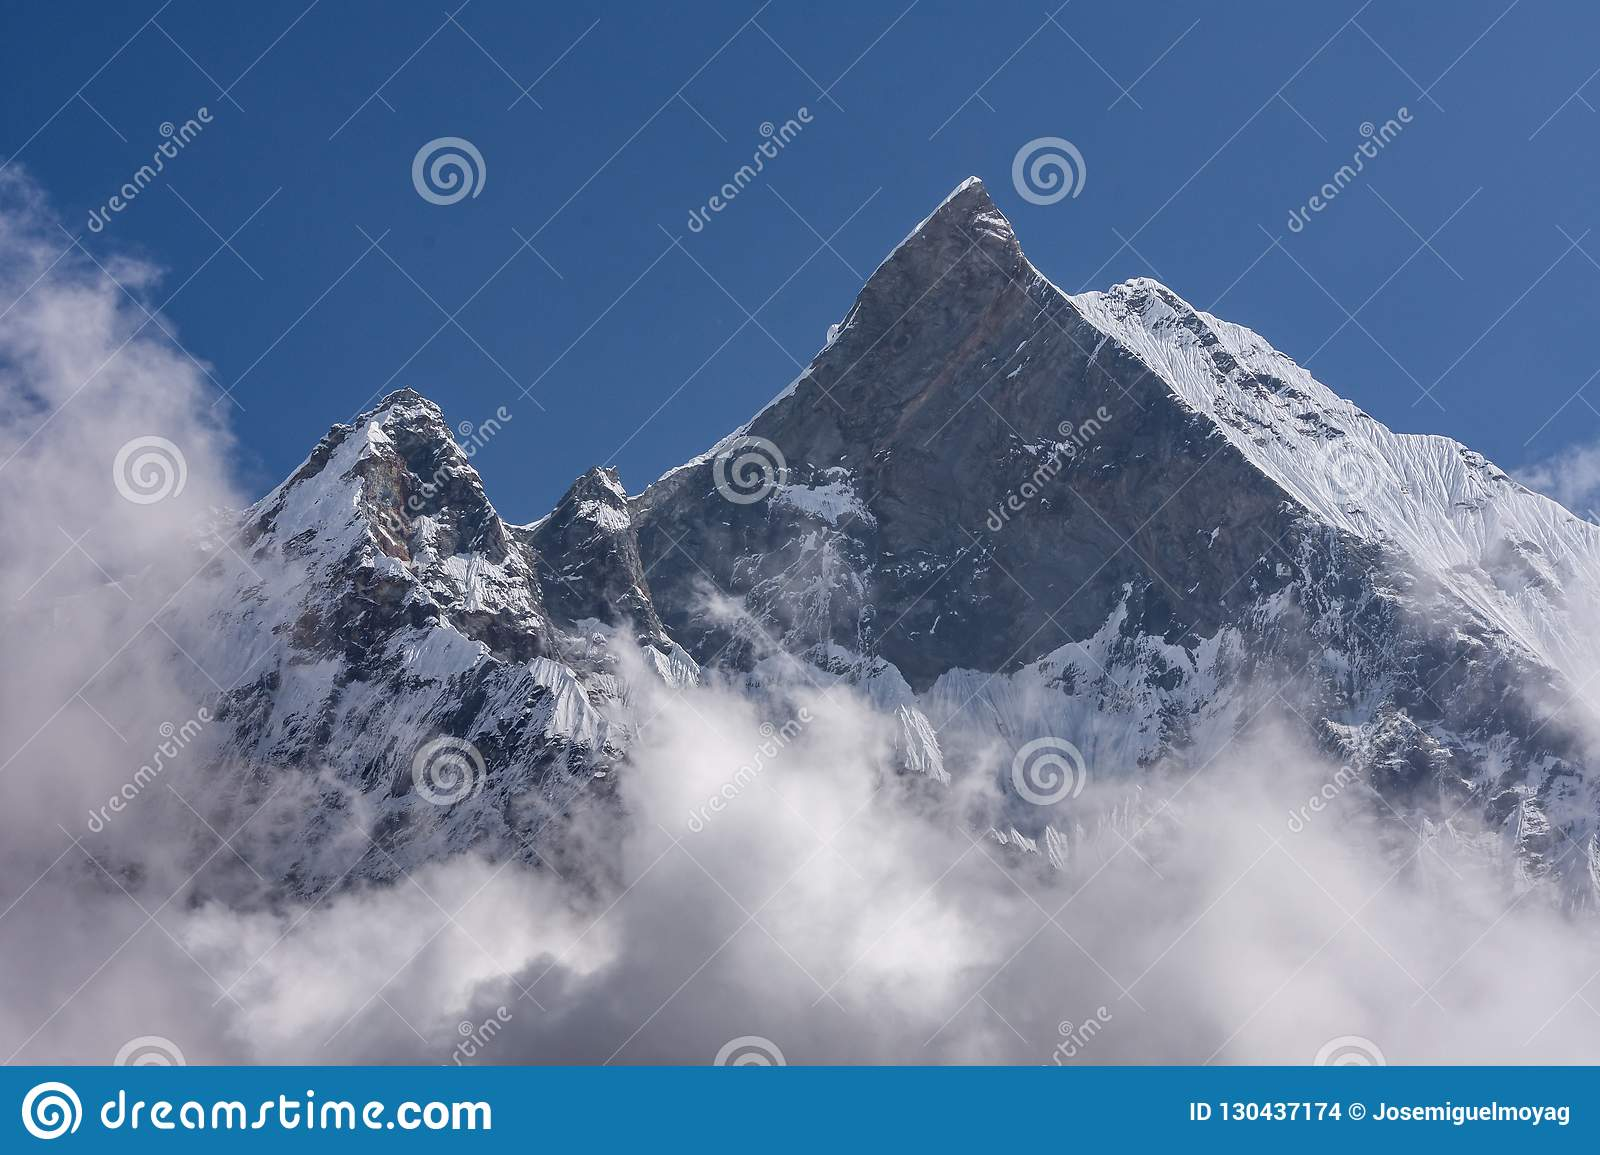 Fish Tail Summit also Machapuchare surrounded by rising clouds